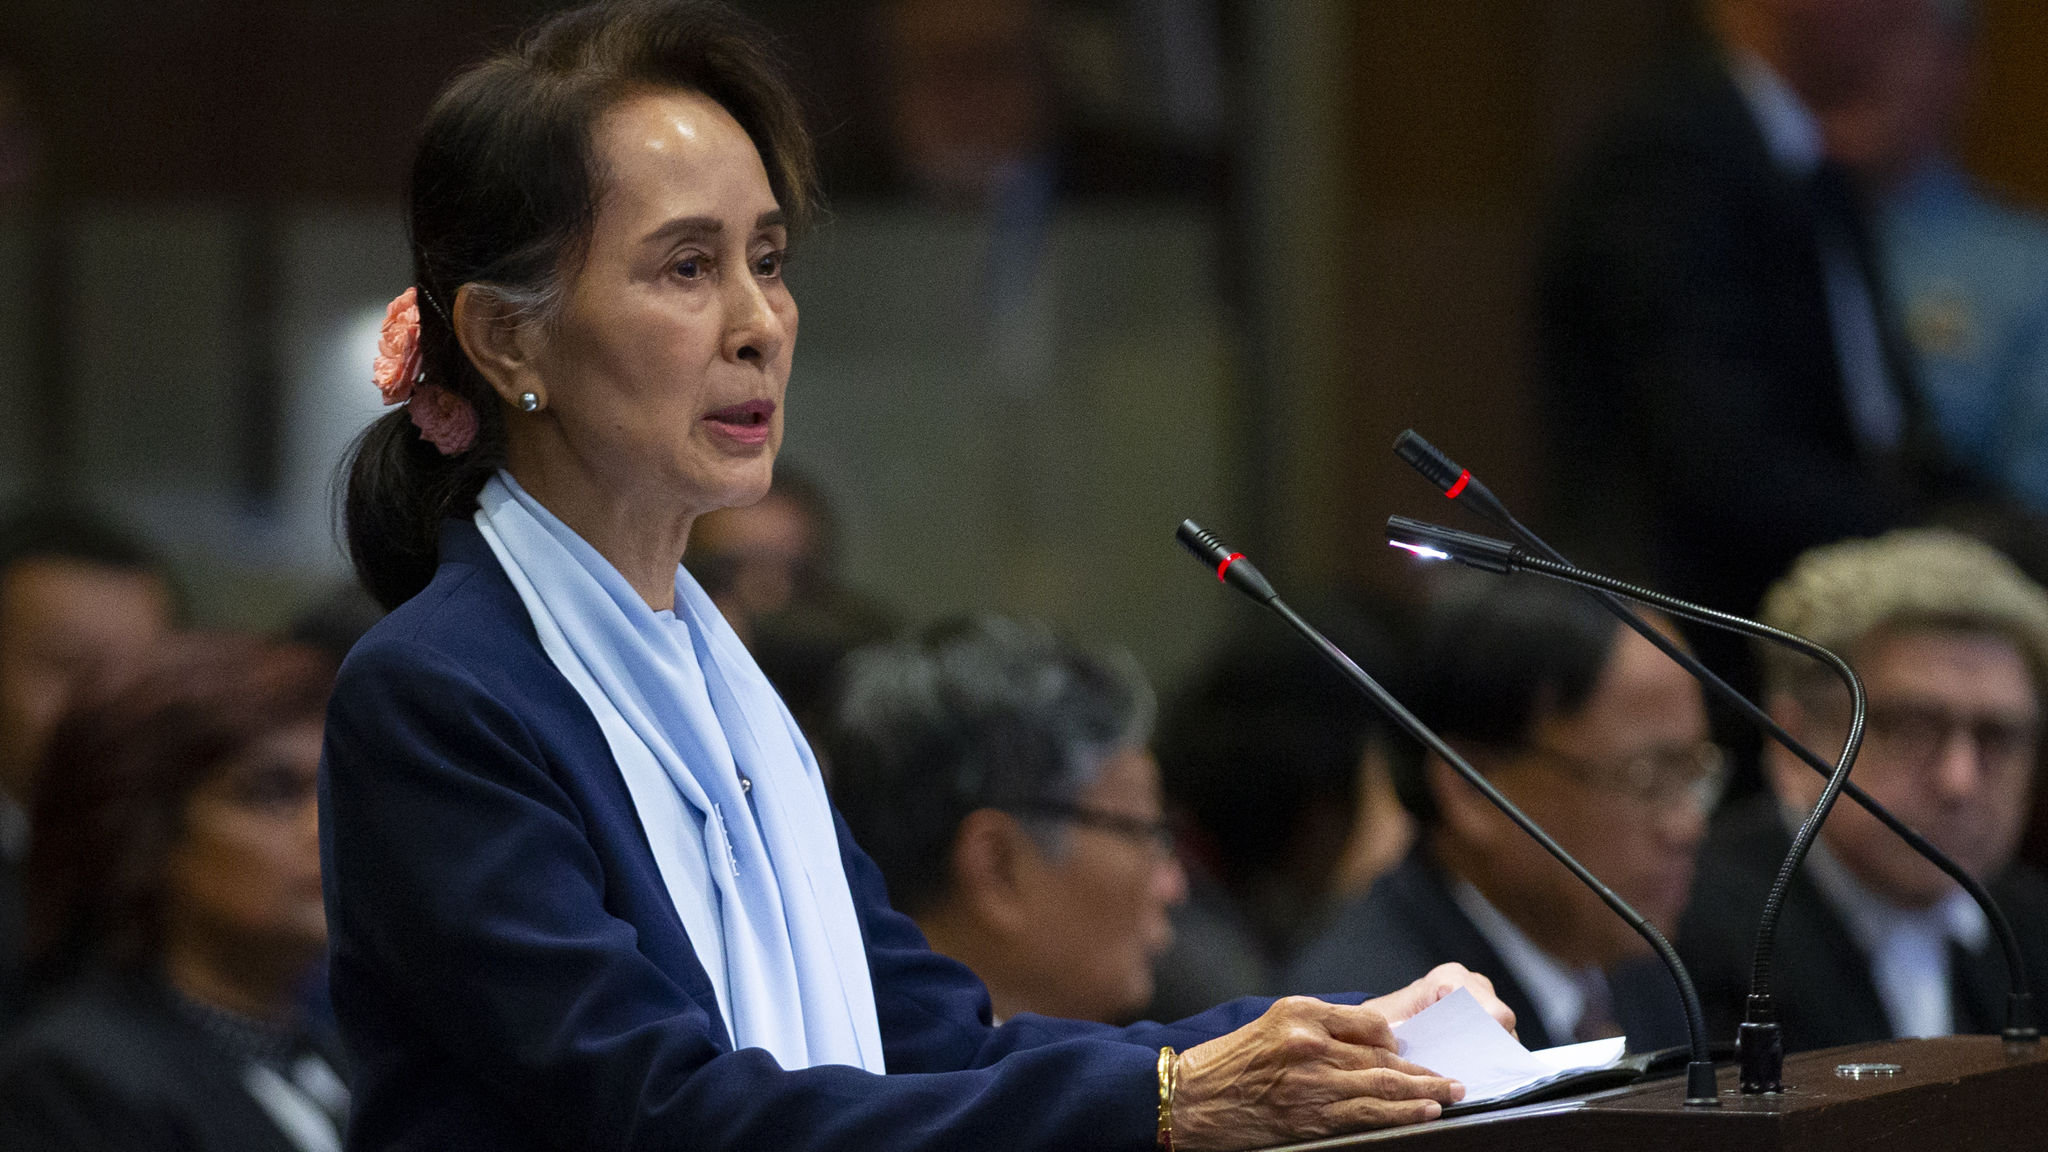 Aung San Suu Kyi defends Myanmar against genocide claims in UN court